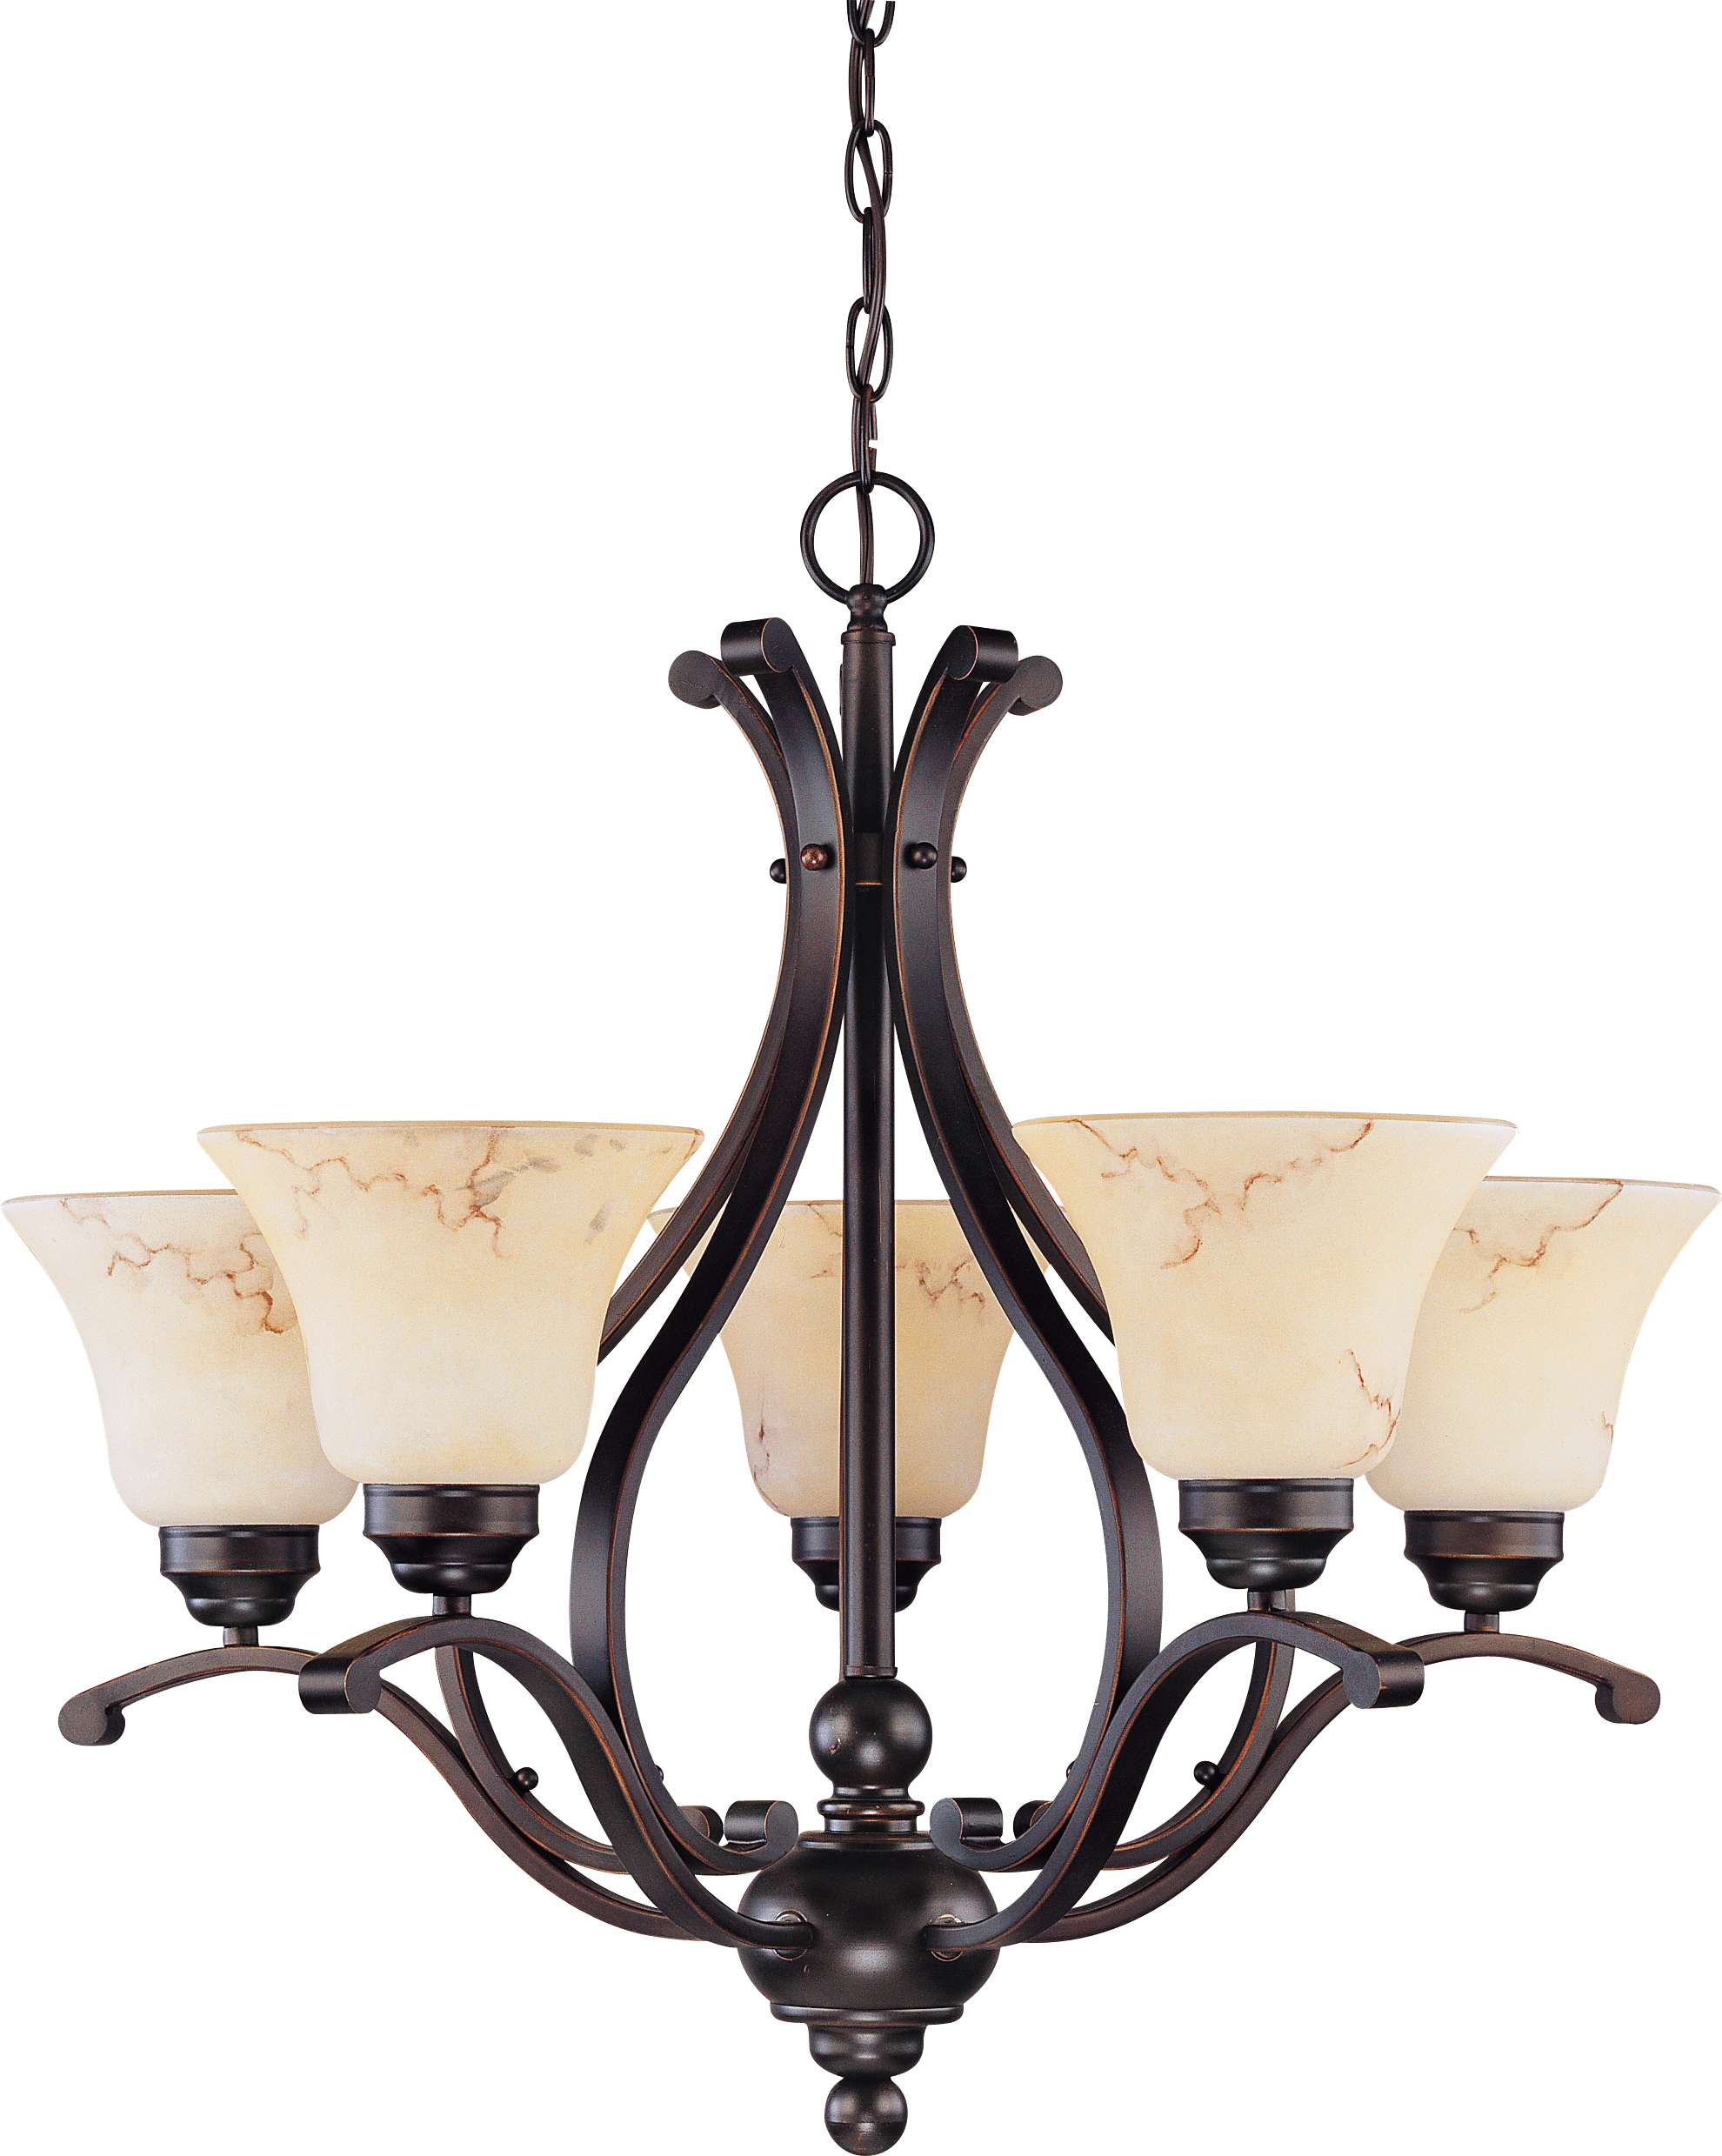 Nuvo lighting 60 1402 anastasia 5 light 24 chandelier with honey marble glass - Popular chandelier styles ...